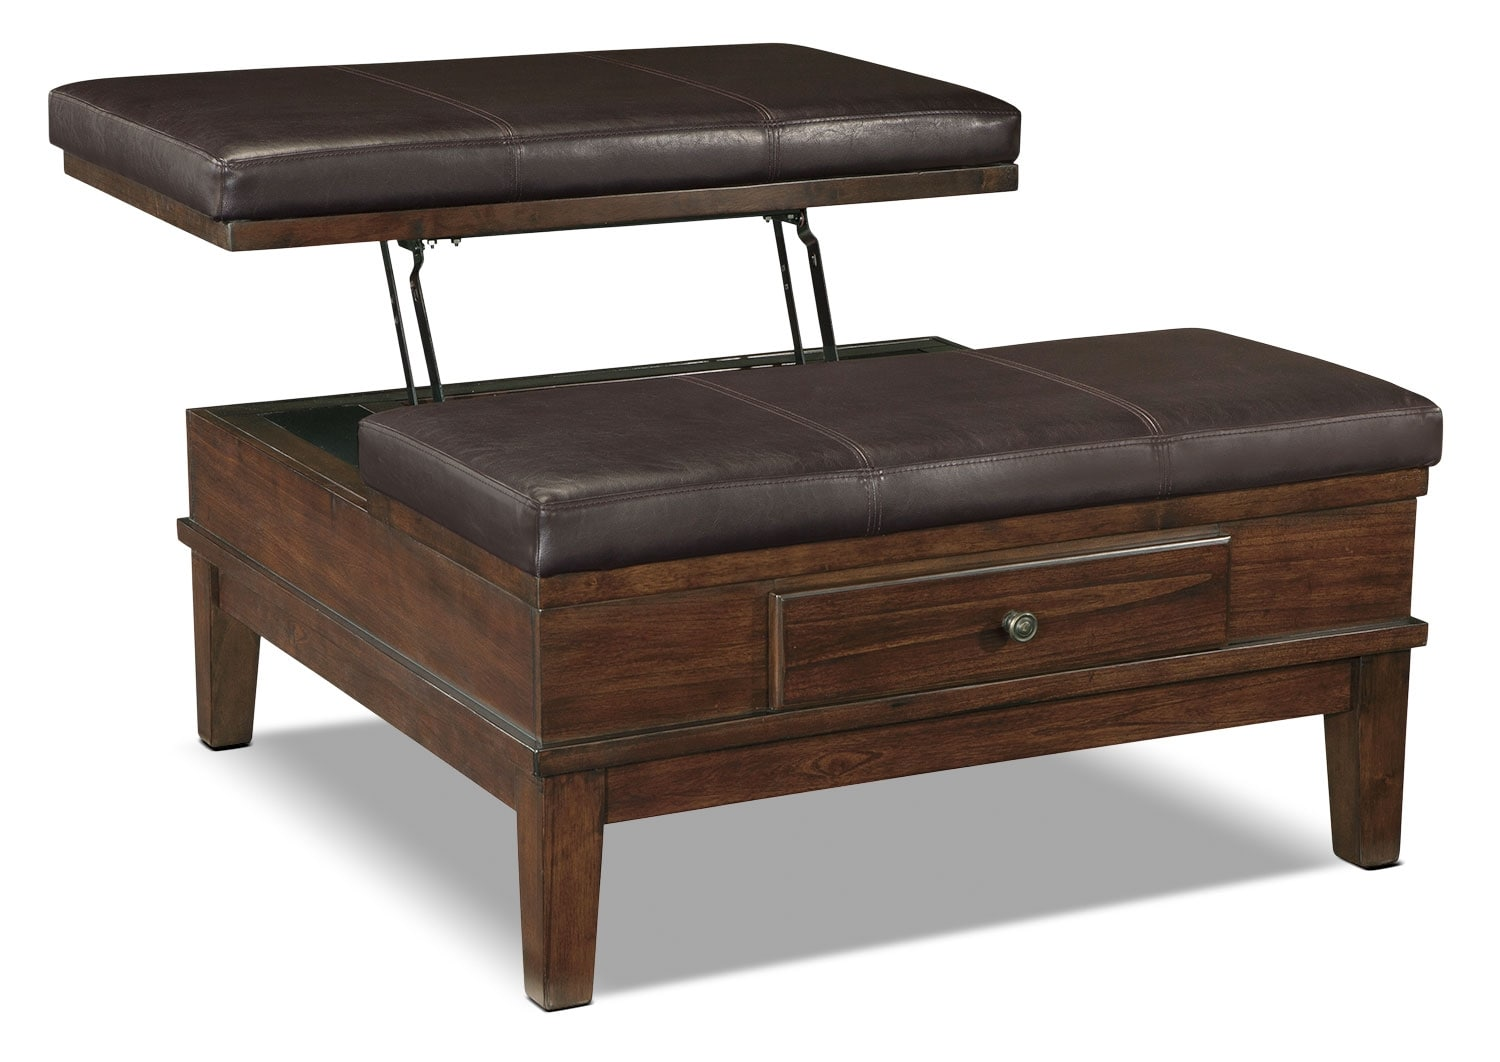 Accent and Occasional Furniture - Gately Ottoman Coffee Table with Lift-Top